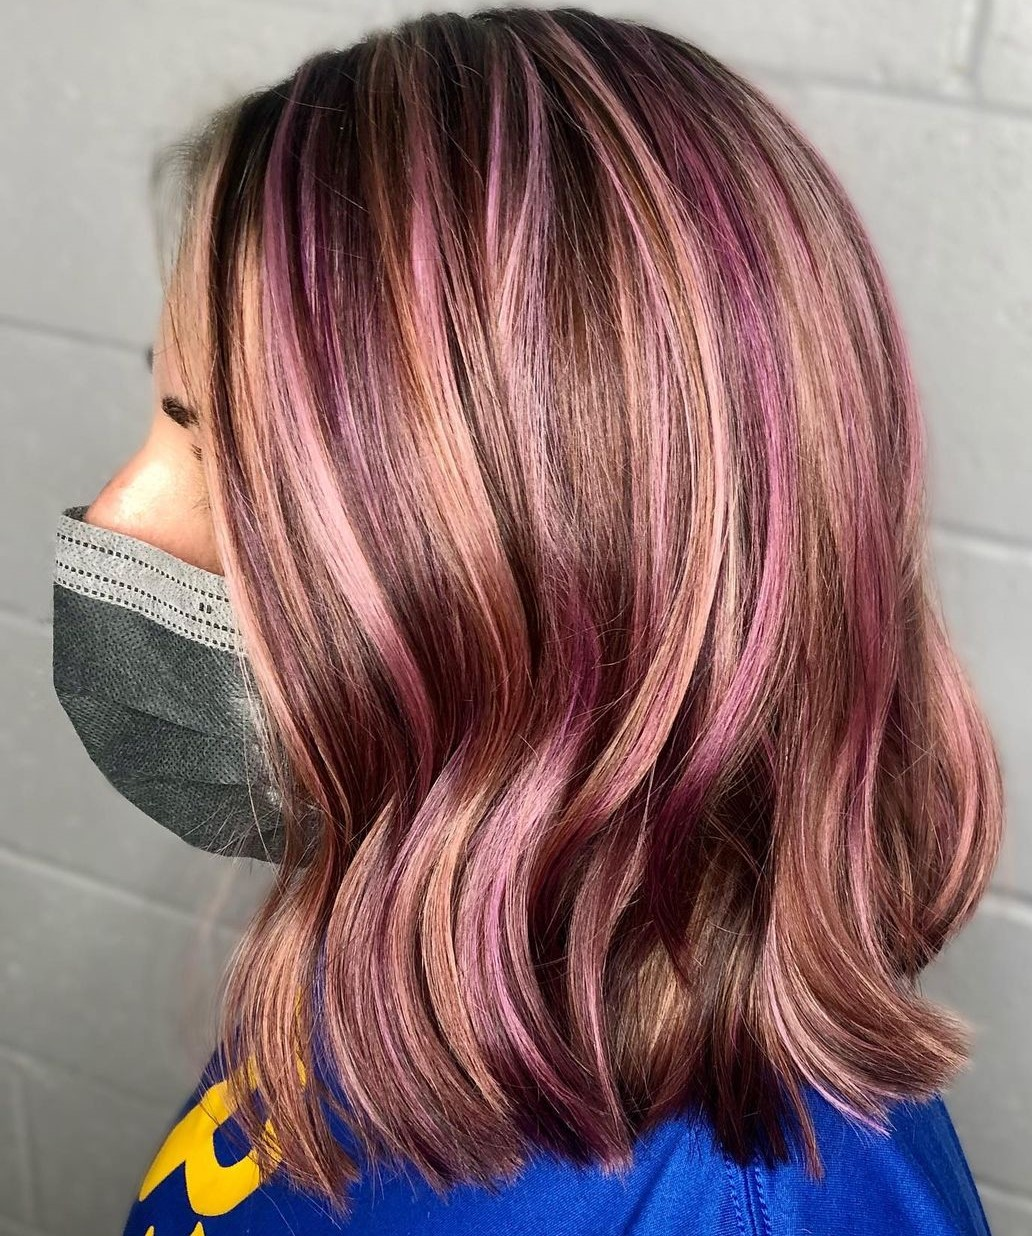 Blonde and Purple Highlights for Brown Hair